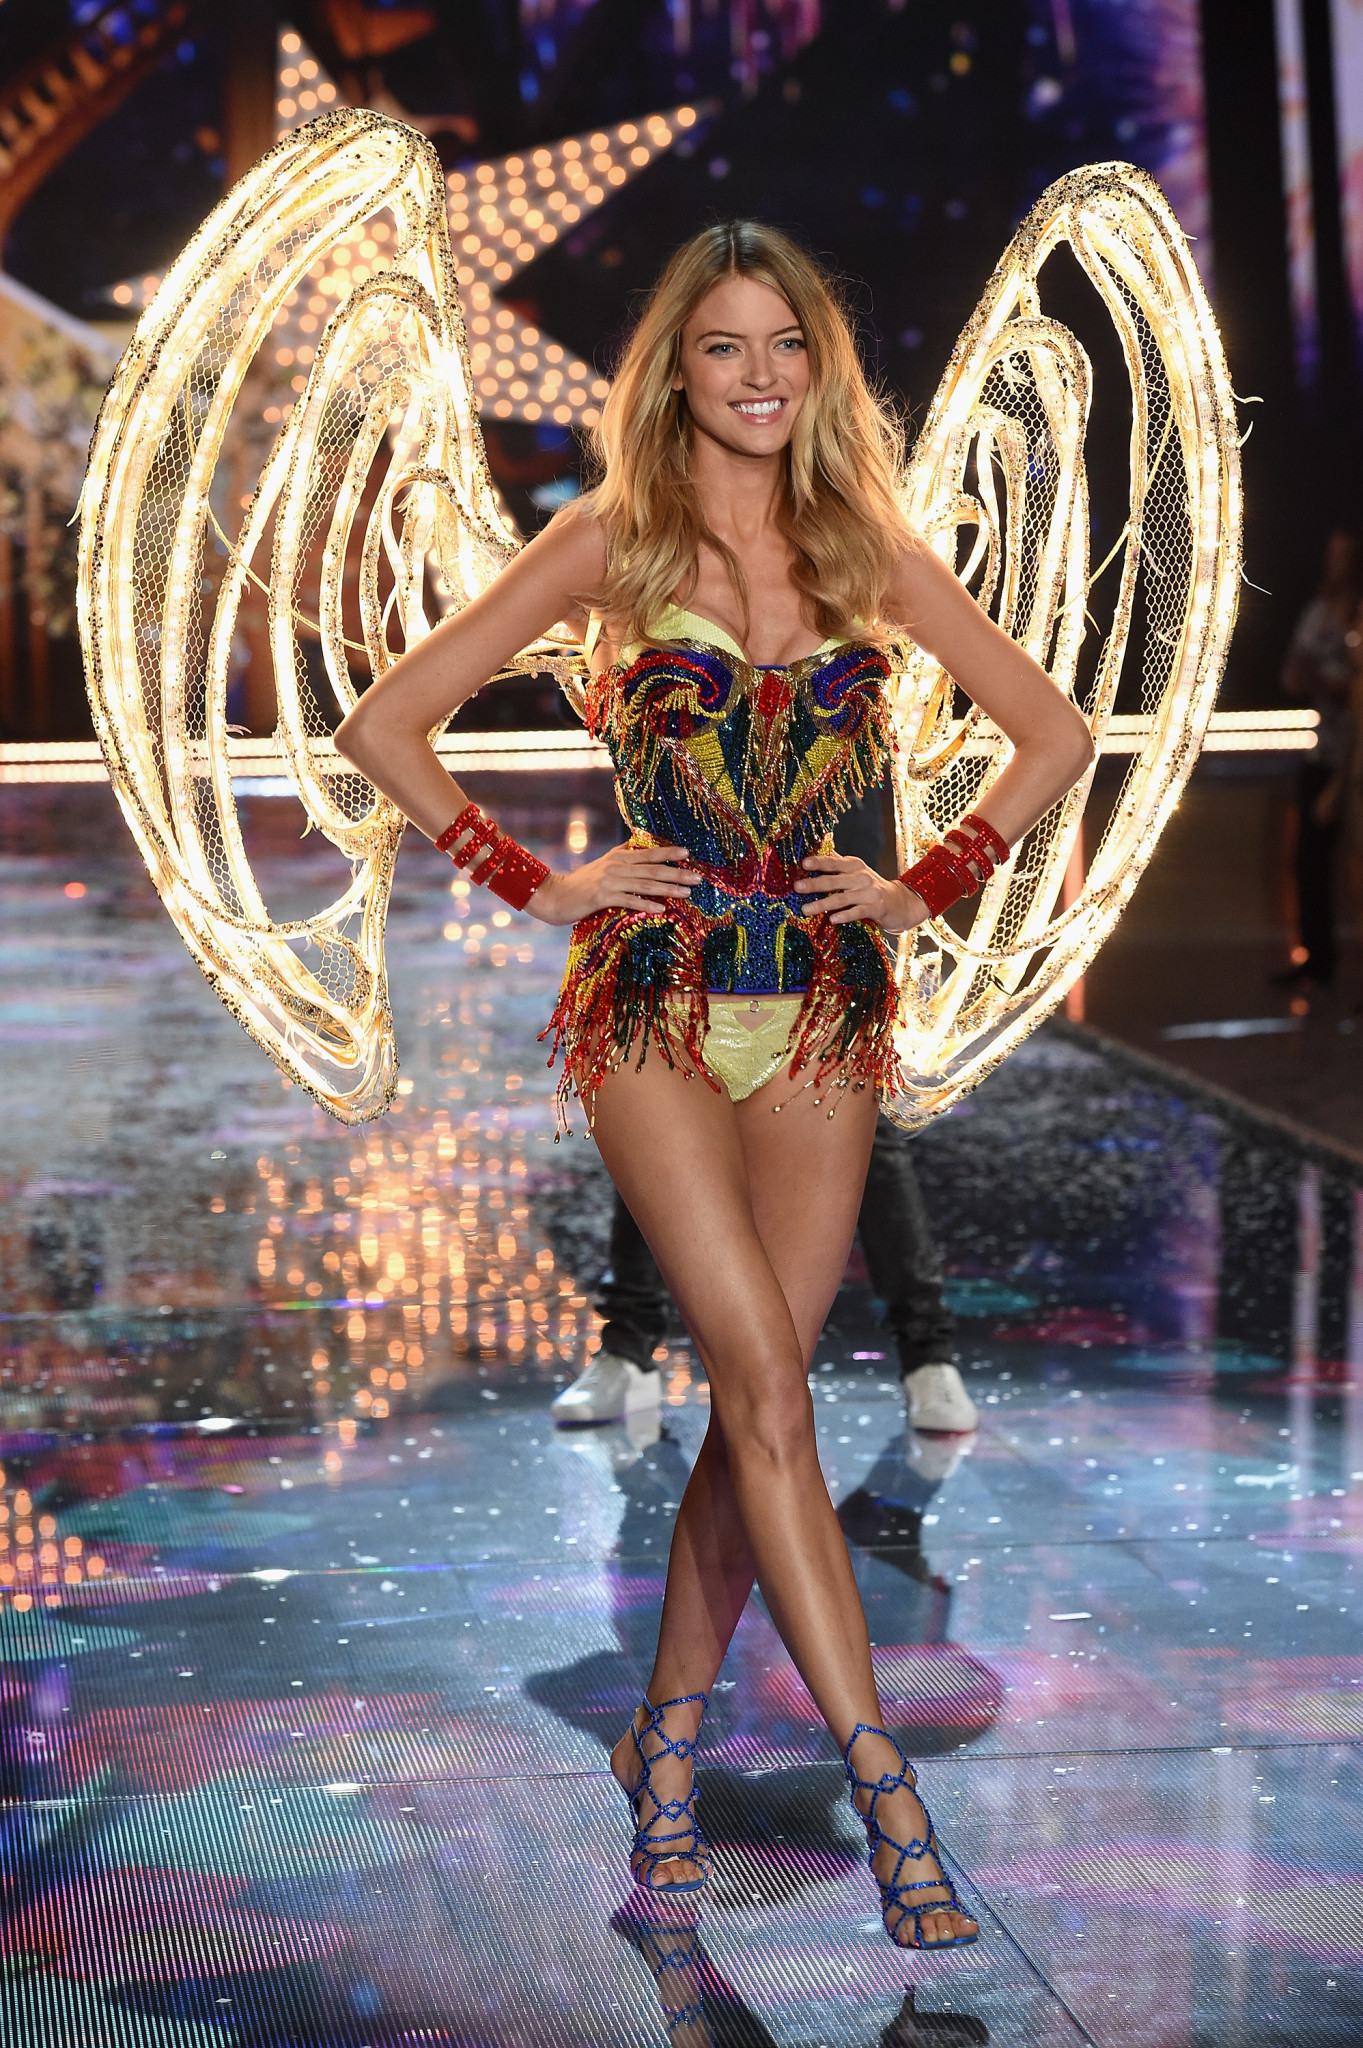 NEW YORK, NY - NOVEMBER 10: Model and New Victoria's Secret Angel Martha Hunt walks the runway during the 2015 Victoria's Secret Fashion Show at Lexington Avenue Armory on November 10, 2015 in New York City. (Photo by Dimitrios Kambouris/Getty Images for Victoria's Secret) *** Local Caption *** Martha Hunt